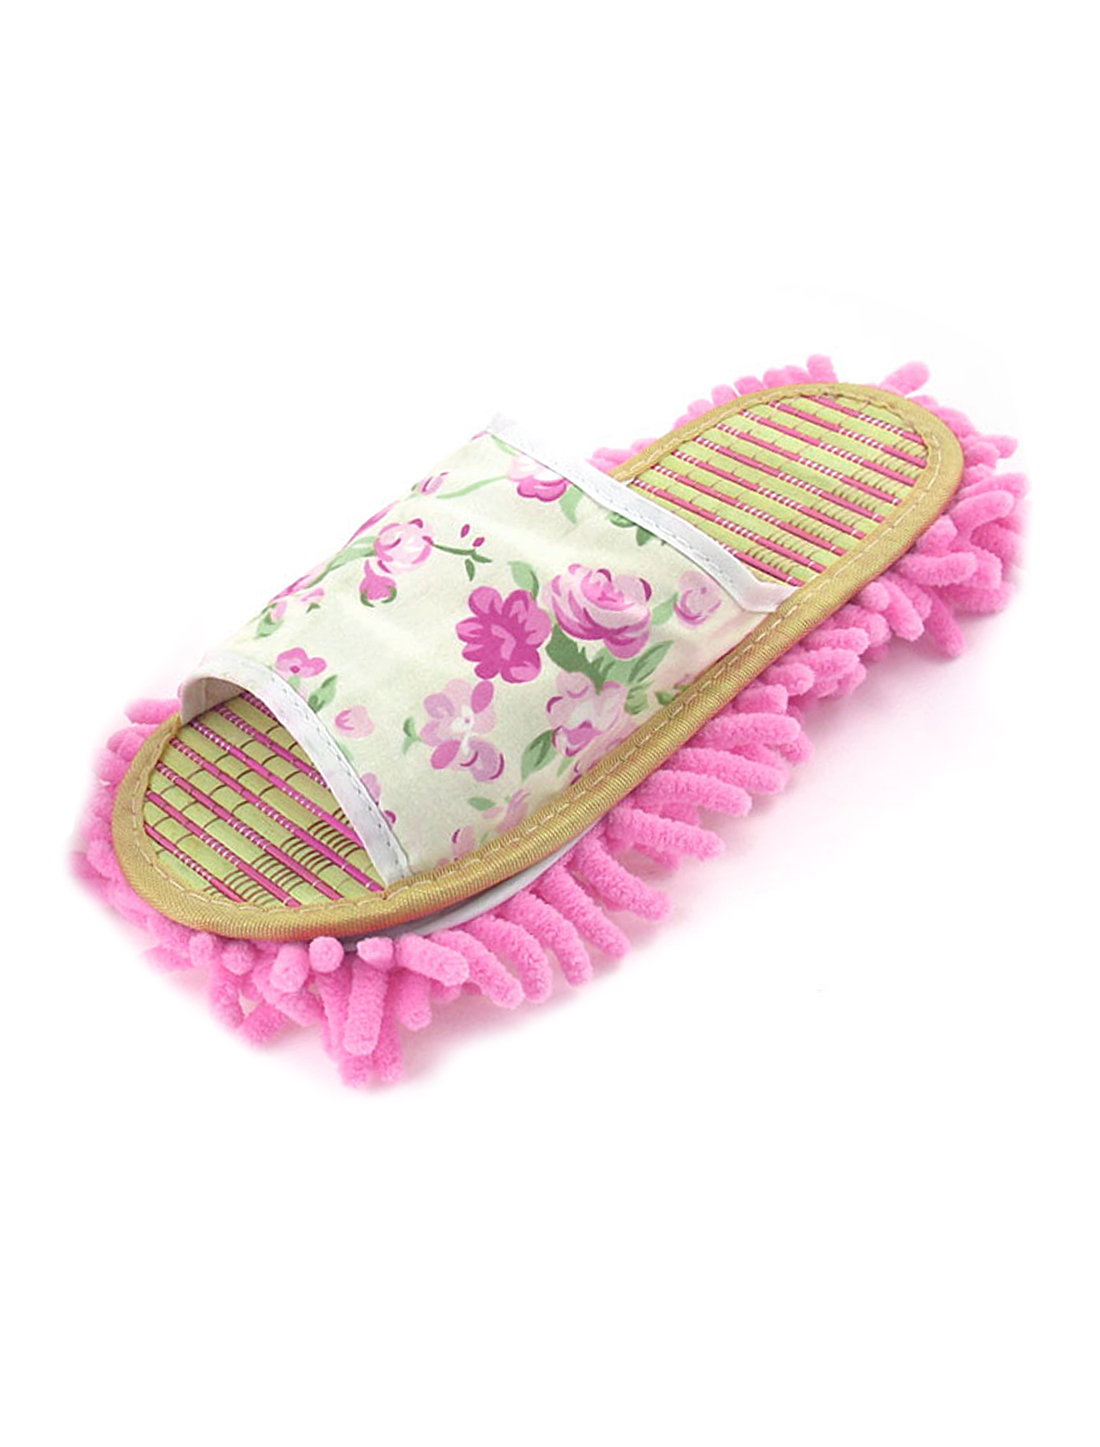 Women Bamboo Insole Flower Pattern Cleaning Floor Mop Slippers Shoes EU 37.5